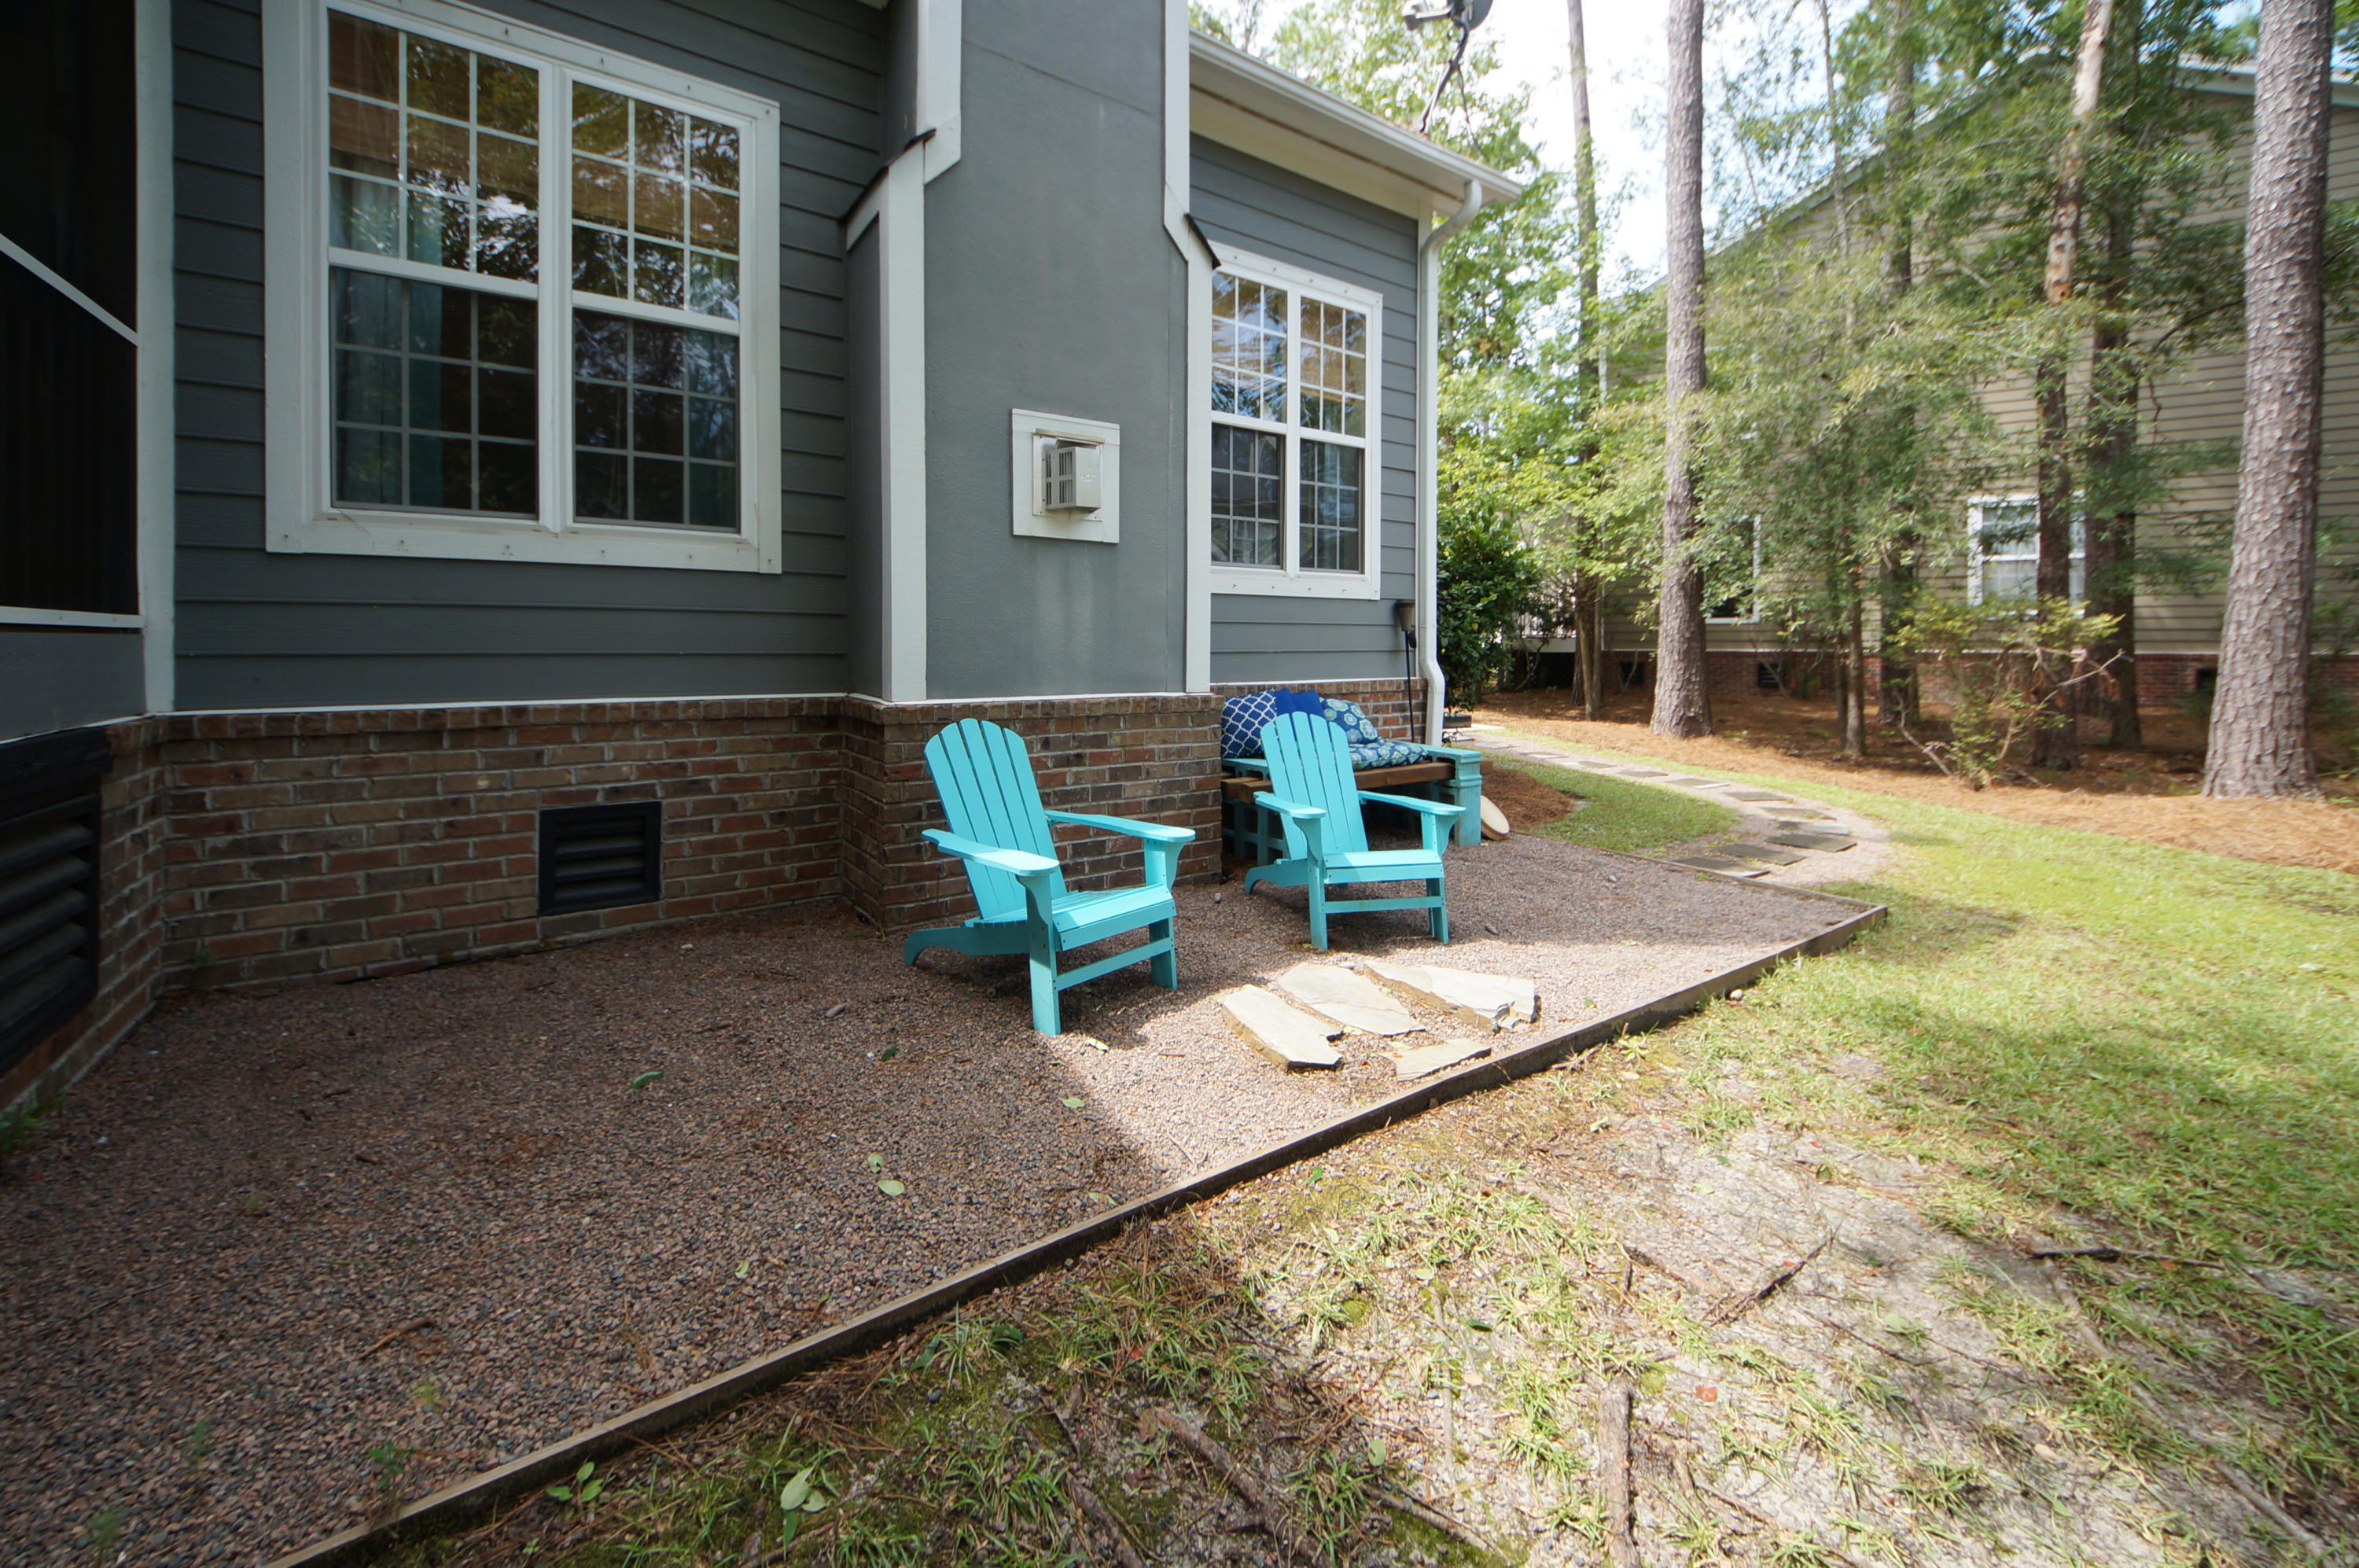 Home for sale 1828 S. James Gregarie Road , Park West, Mt. Pleasant, SC